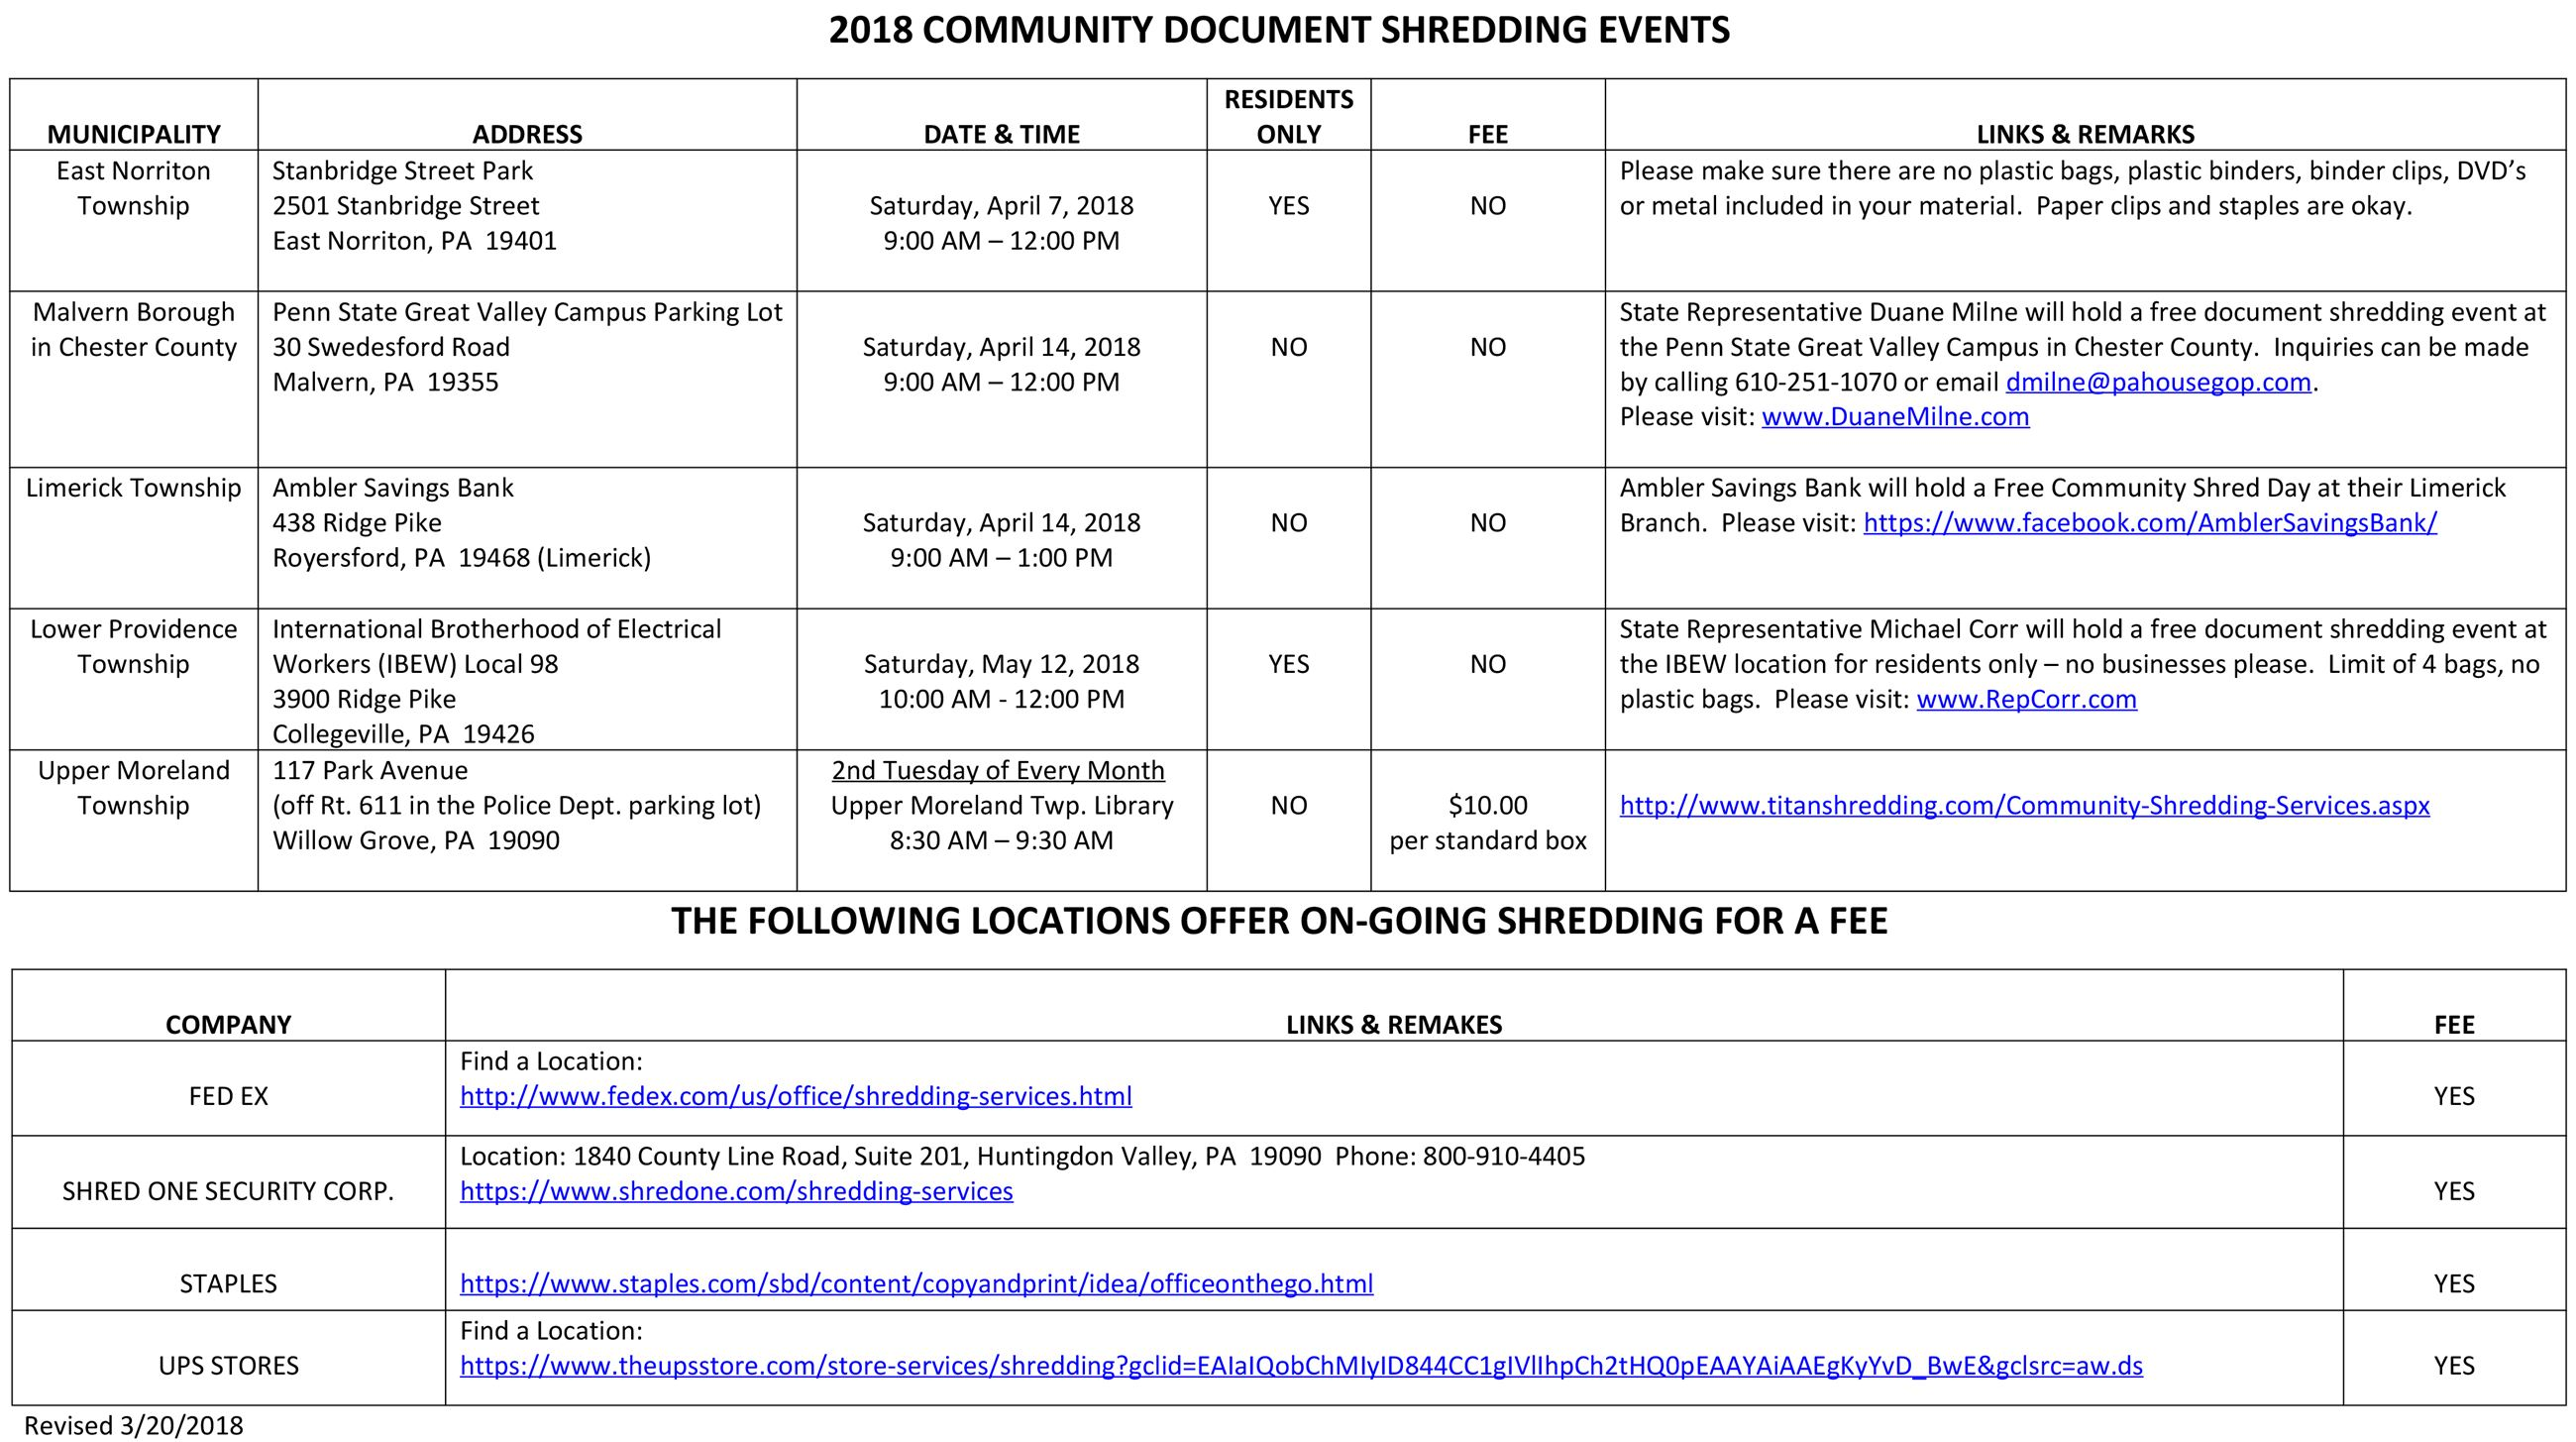 2018 County Shredding Events